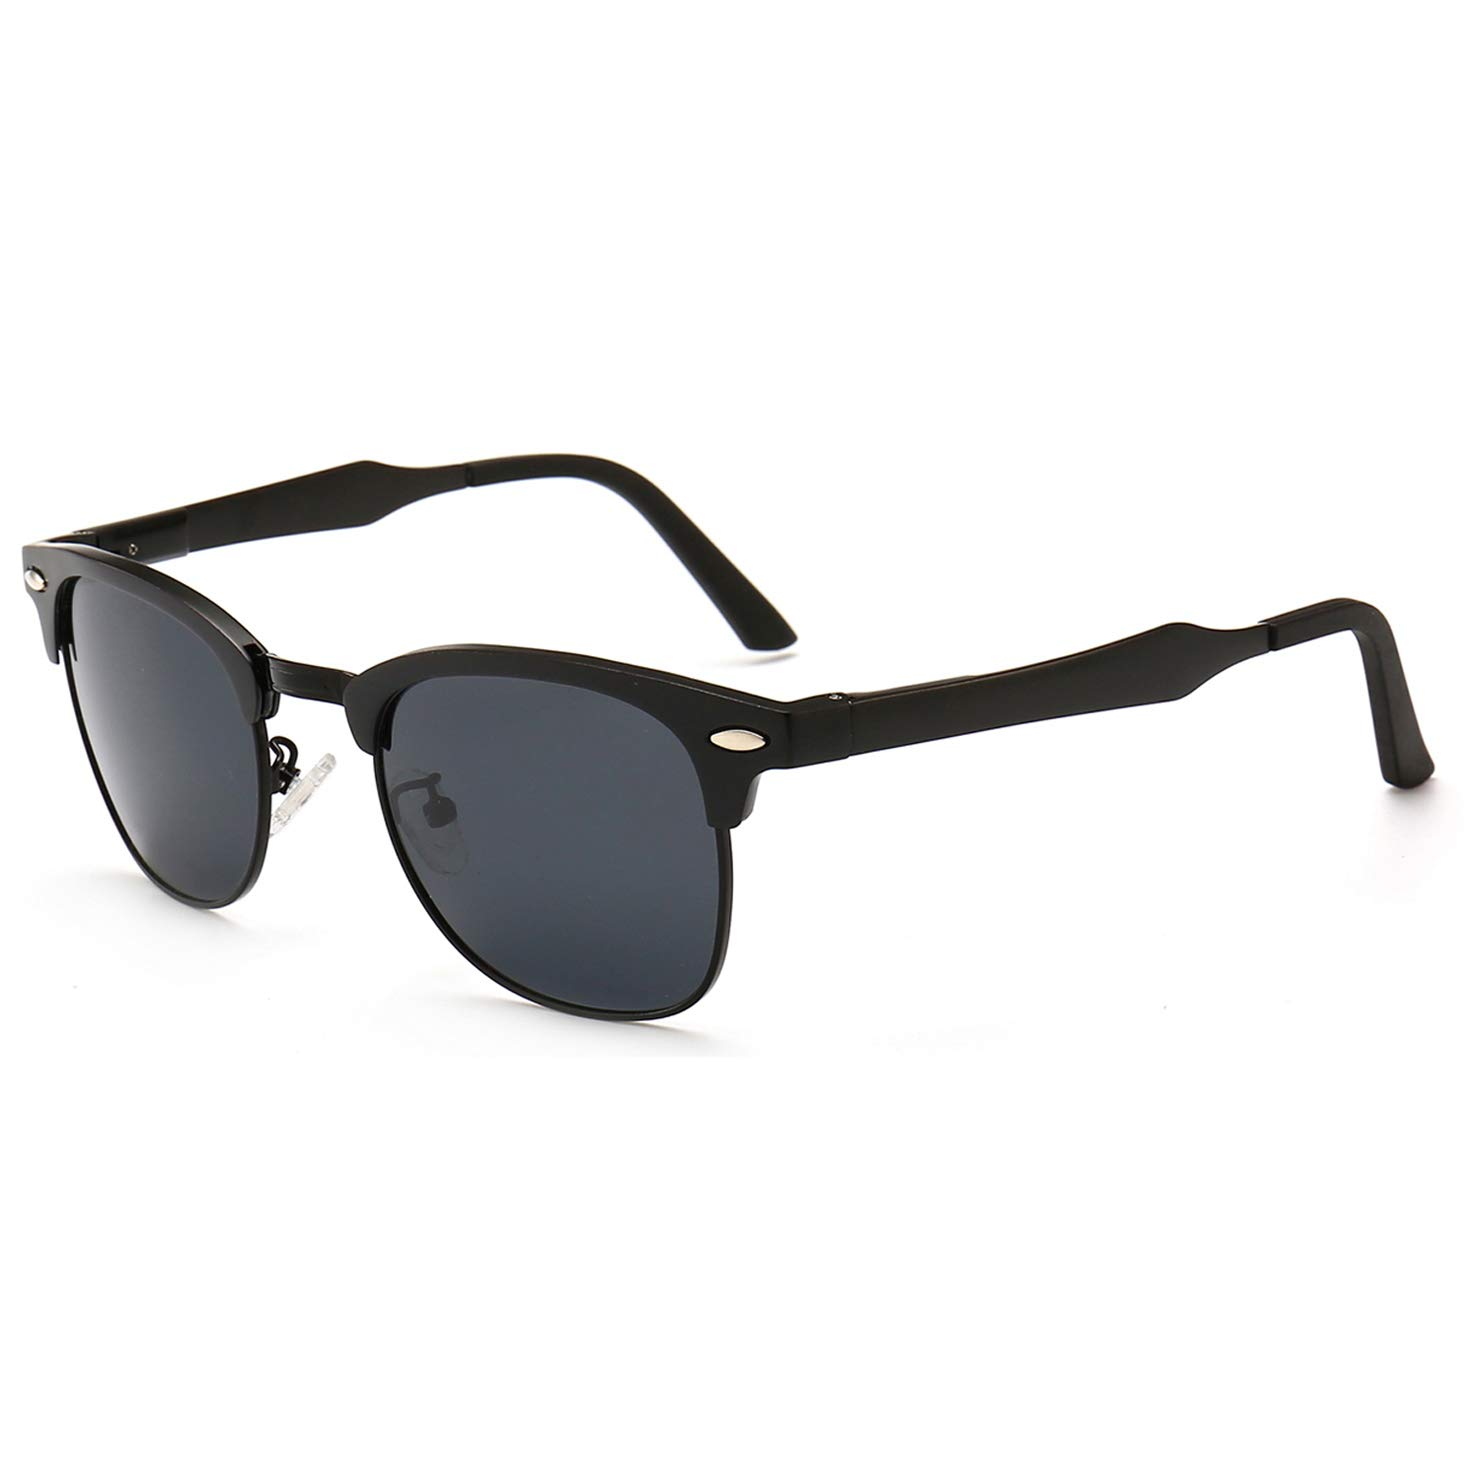 SUNGAIT Classic Half Frame Retro Sunglasses with Polarized Lens (Black Frame Gray Lens) by SUNGAIT